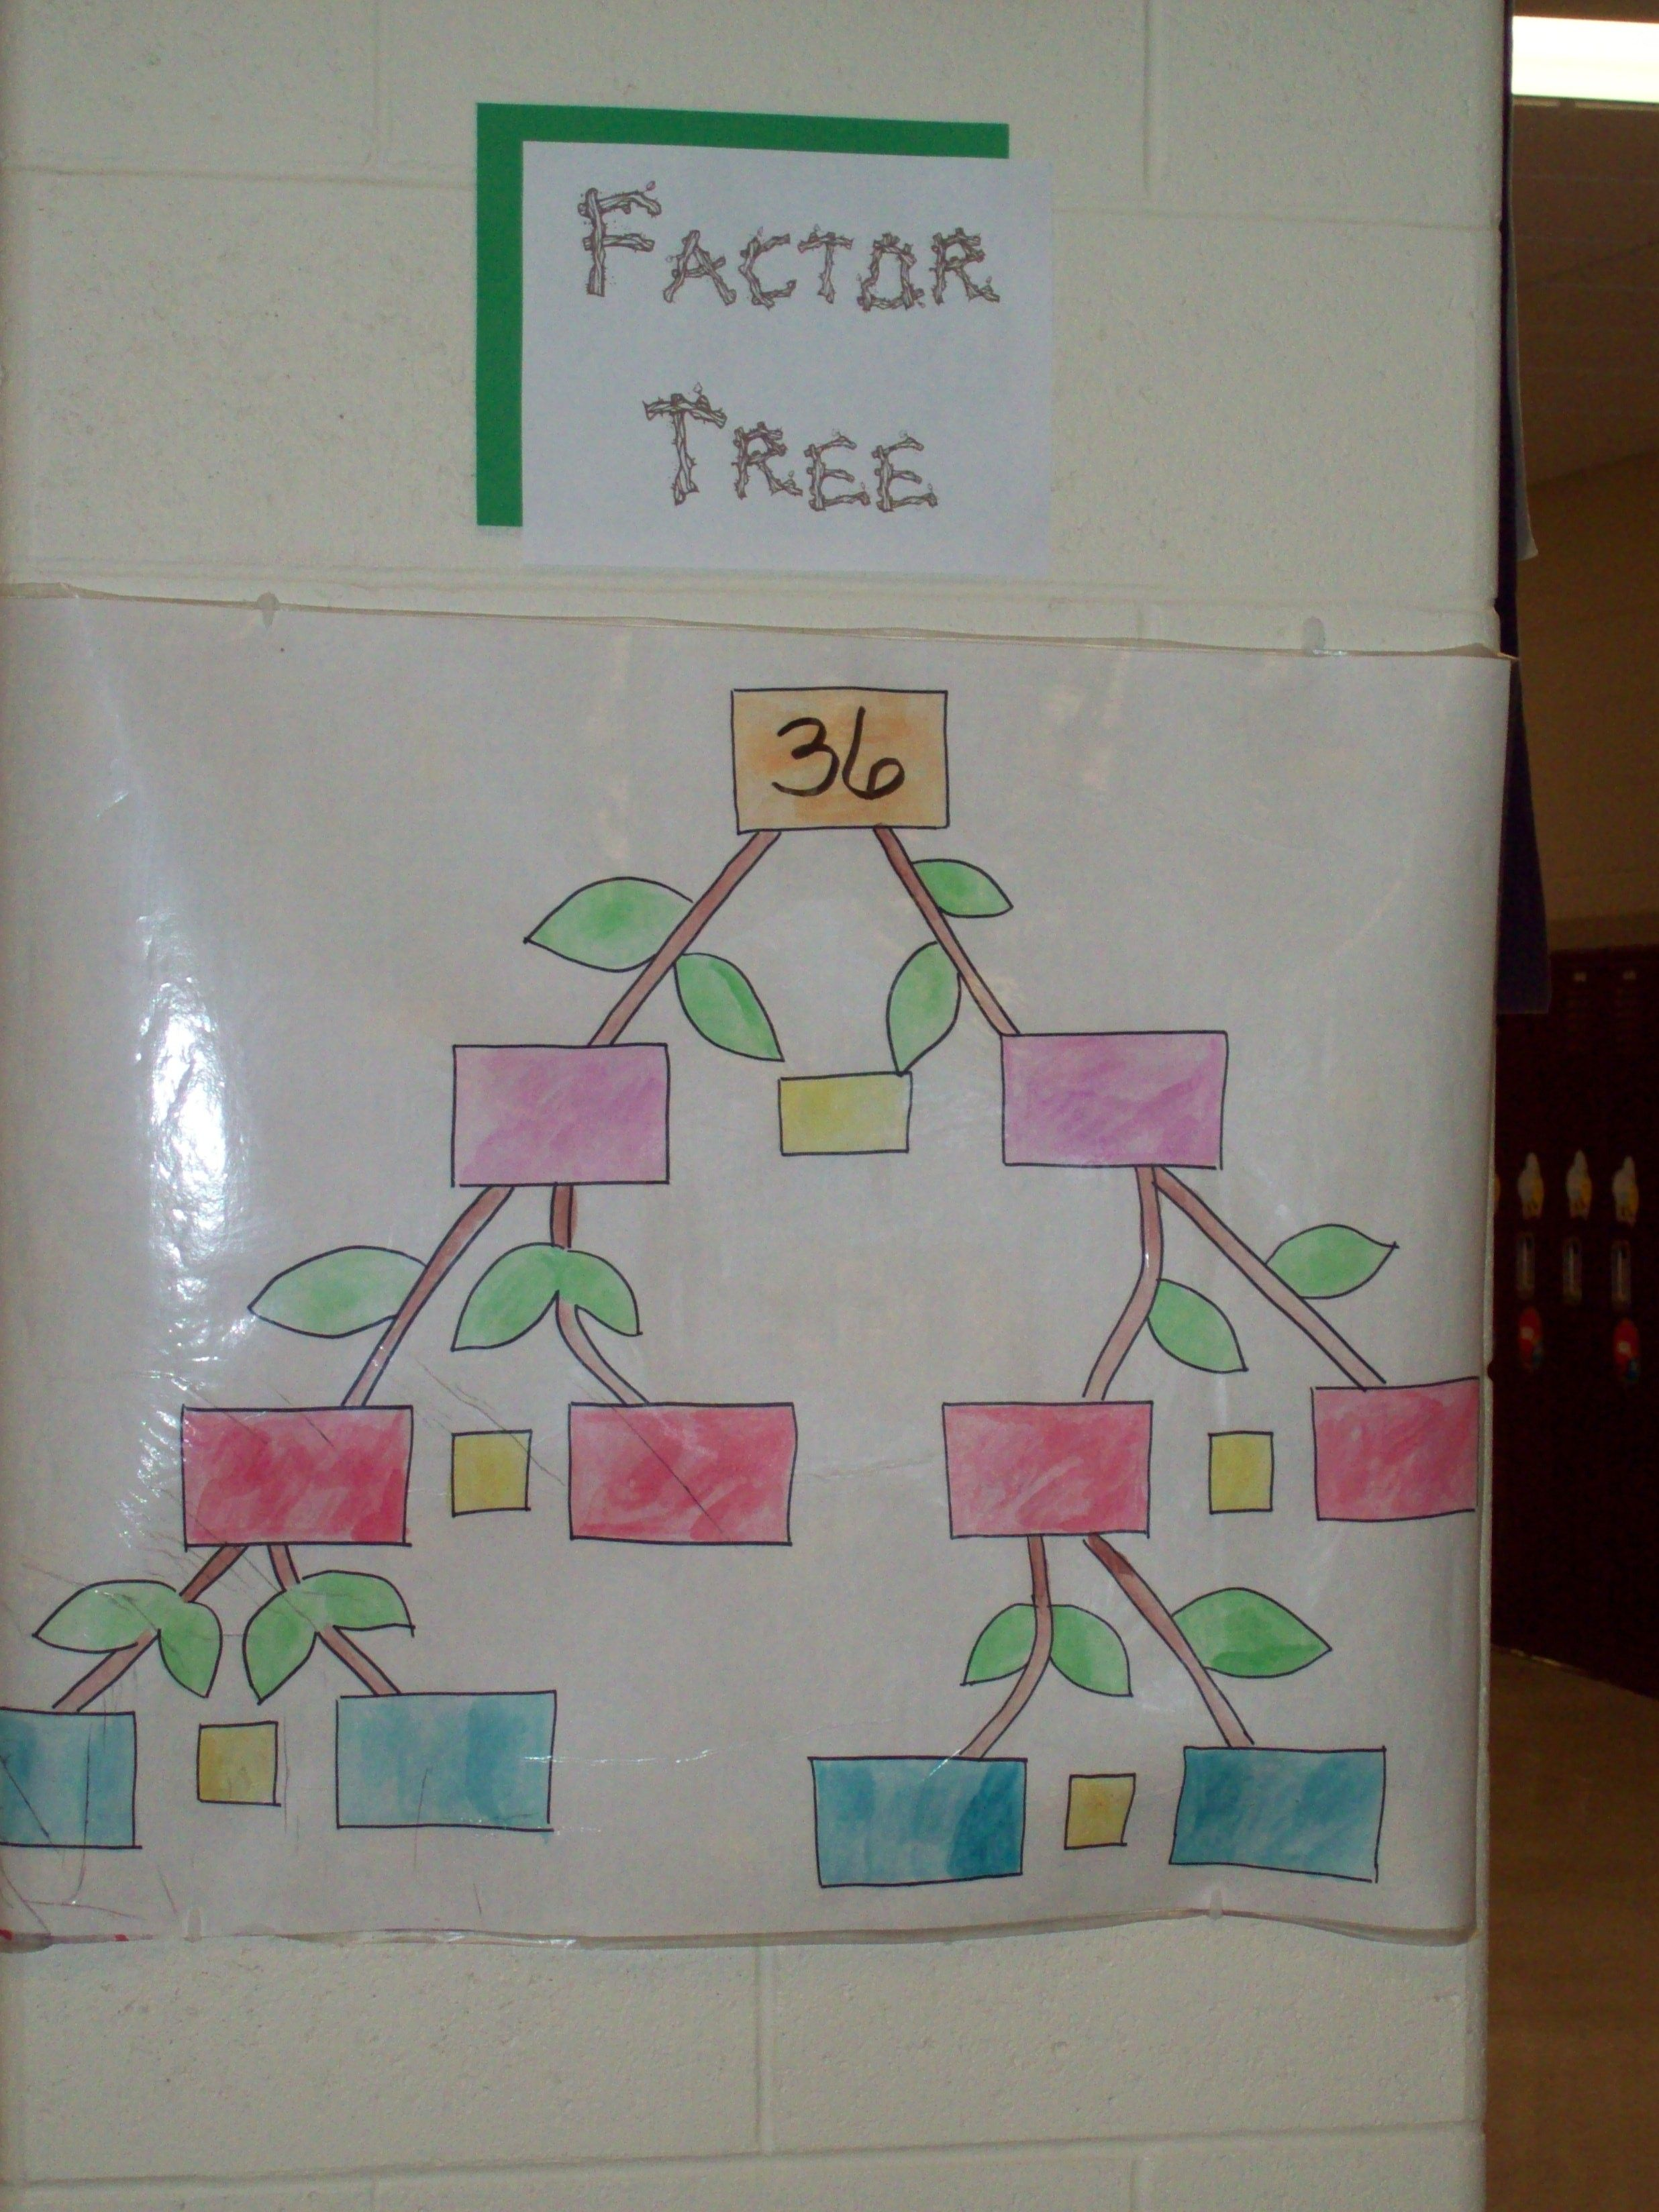 Factoring With Our Tree